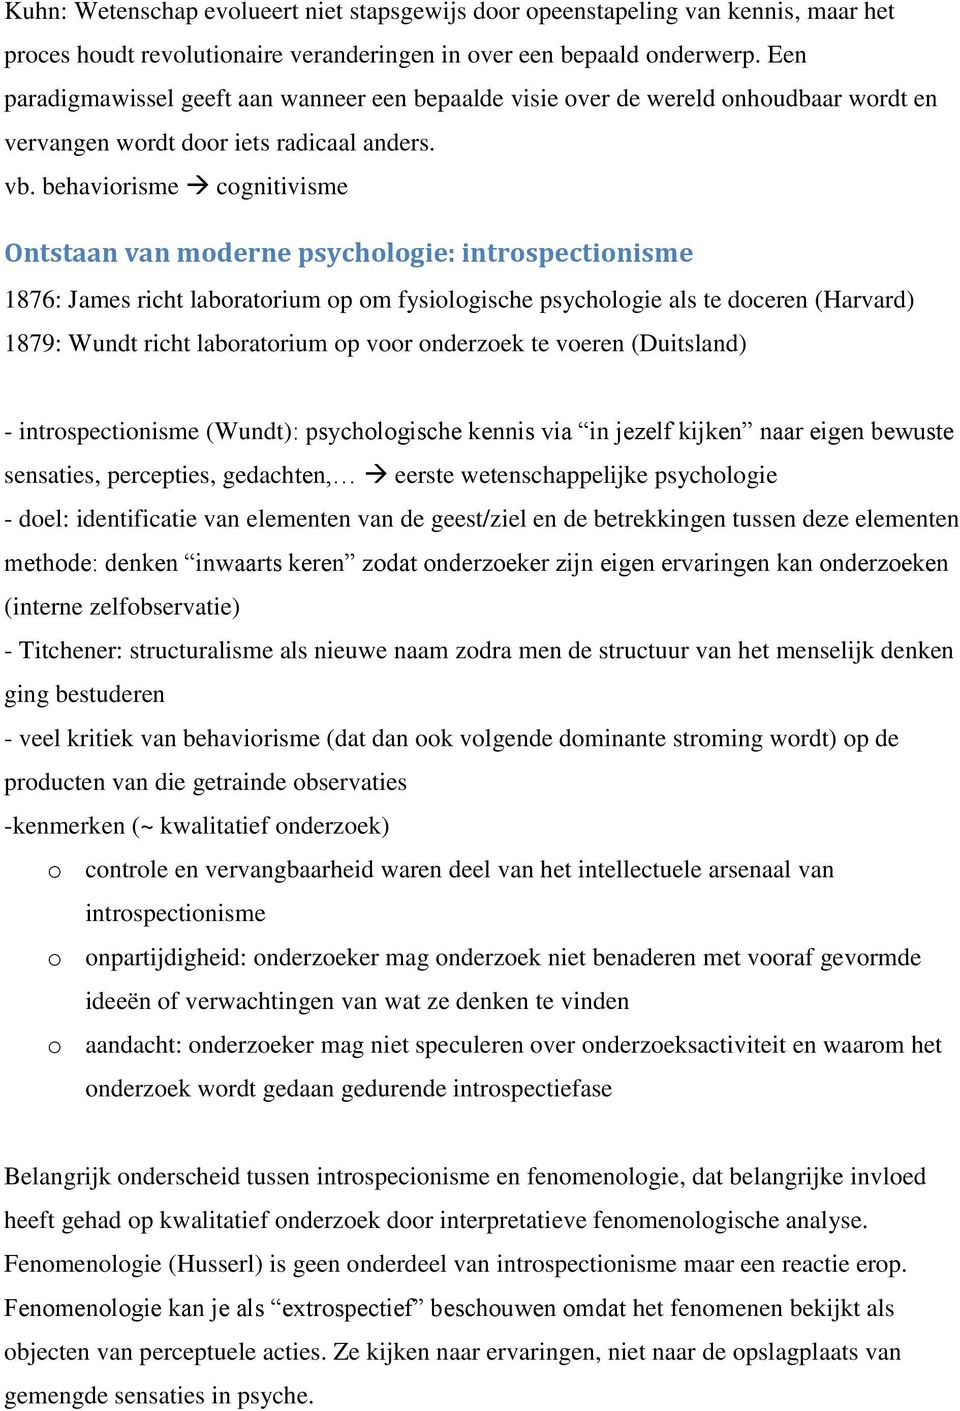 behaviorisme cognitivisme Ontstaan van moderne psychologie: introspectionisme 1876: James richt laboratorium op om fysiologische psychologie als te doceren (Harvard) 1879: Wundt richt laboratorium op